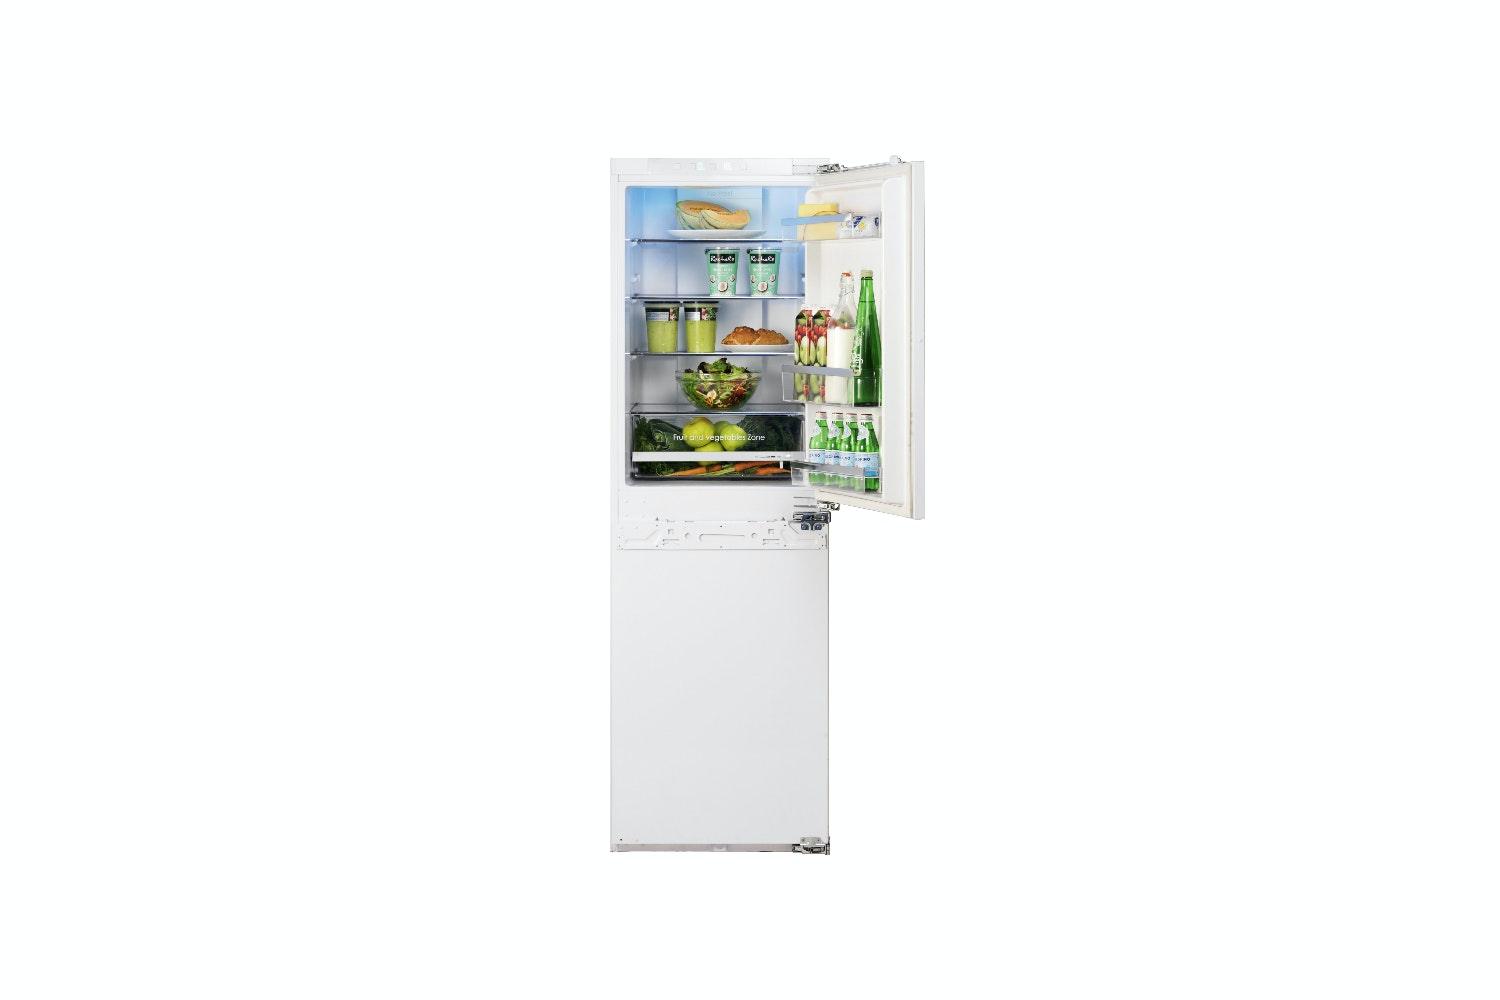 Rangemaster Built-In Fridge Freezer | RFXF5050FI/AP